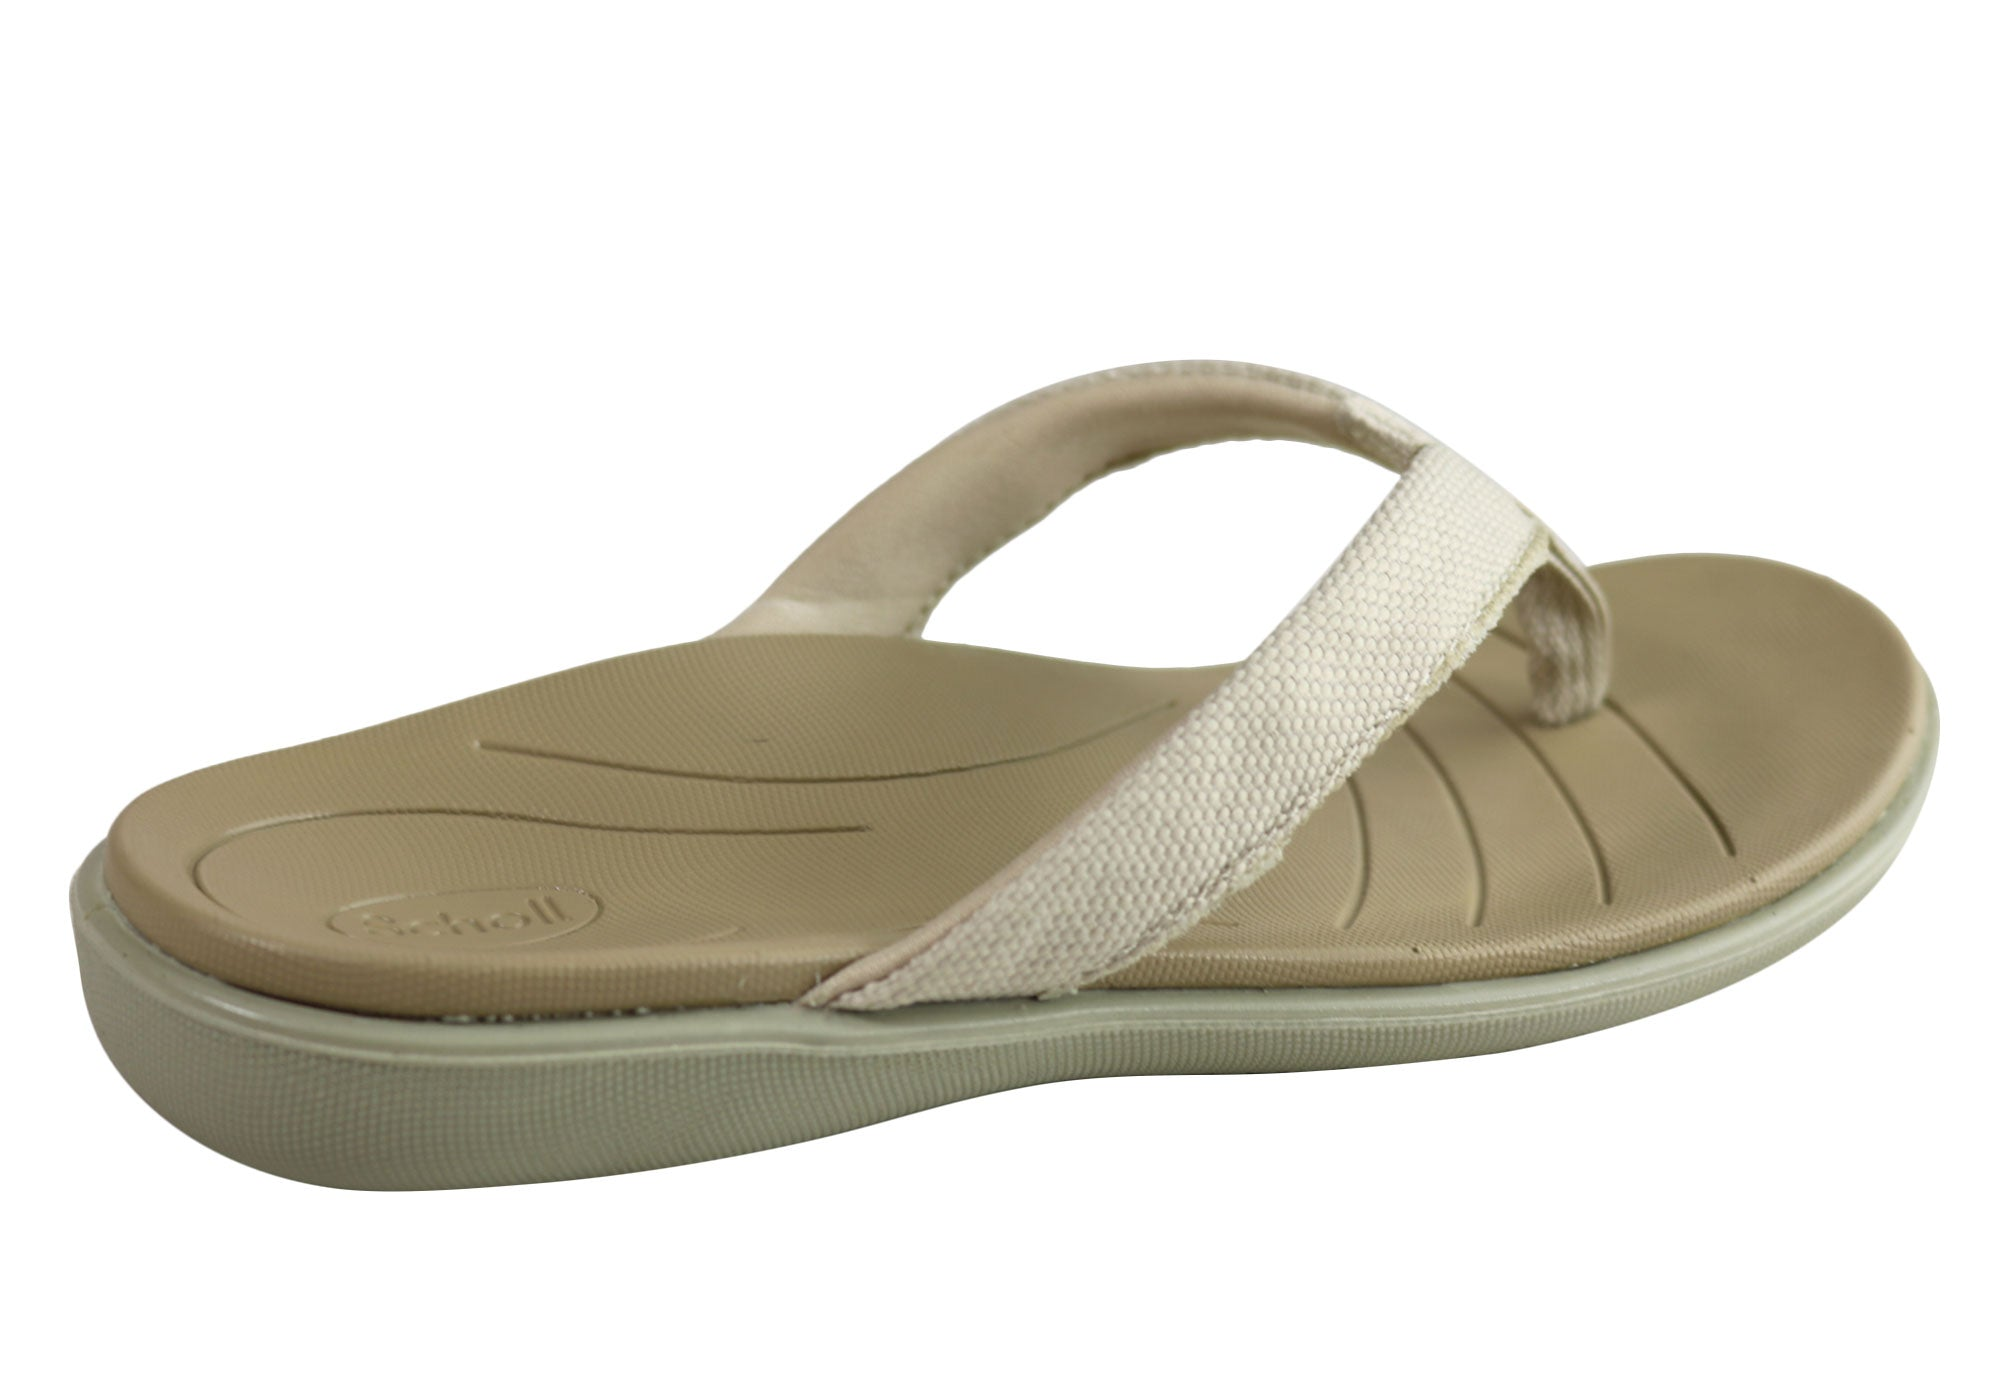 Scholl Orthaheel Pacific Womens Comfortable Supportive Thongs Sandals